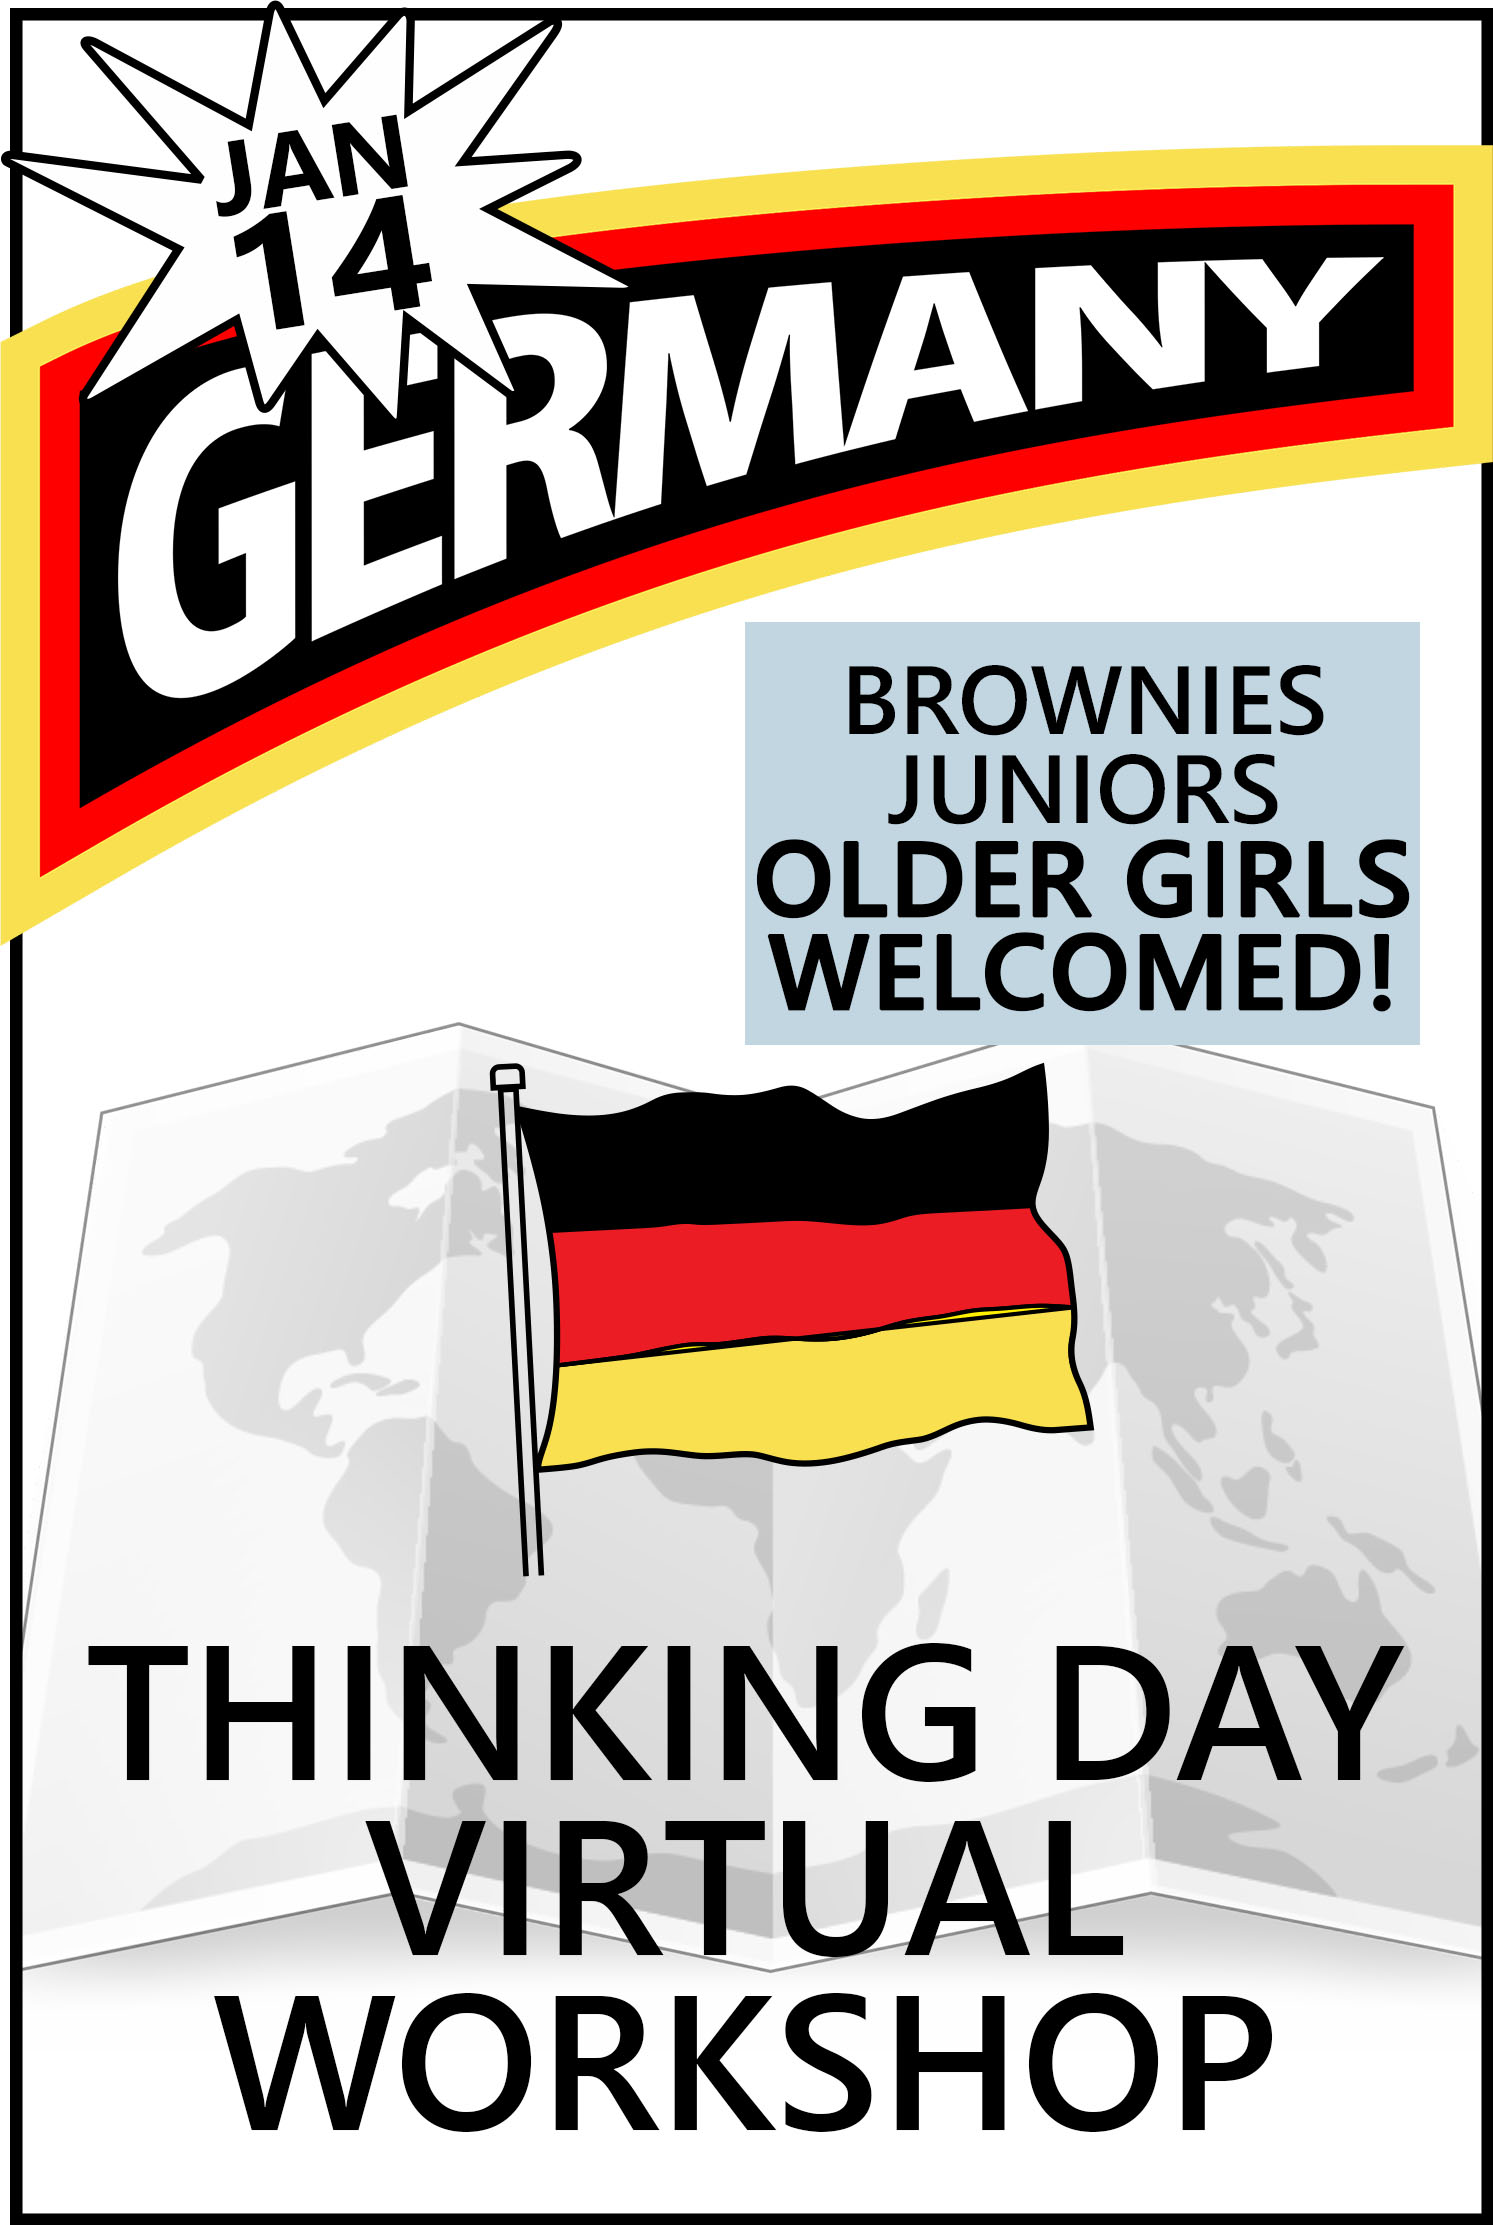 Explore German traditions, food, clothing, customs, and more. Developed for Brownies and Juniors but older girls are certainly welcomed! Includes Supplies! #makingfriends #virtualclass #thinkingday #virtualworshop #onlineclass #germany #thinkingdayworkshop via @gsleader411